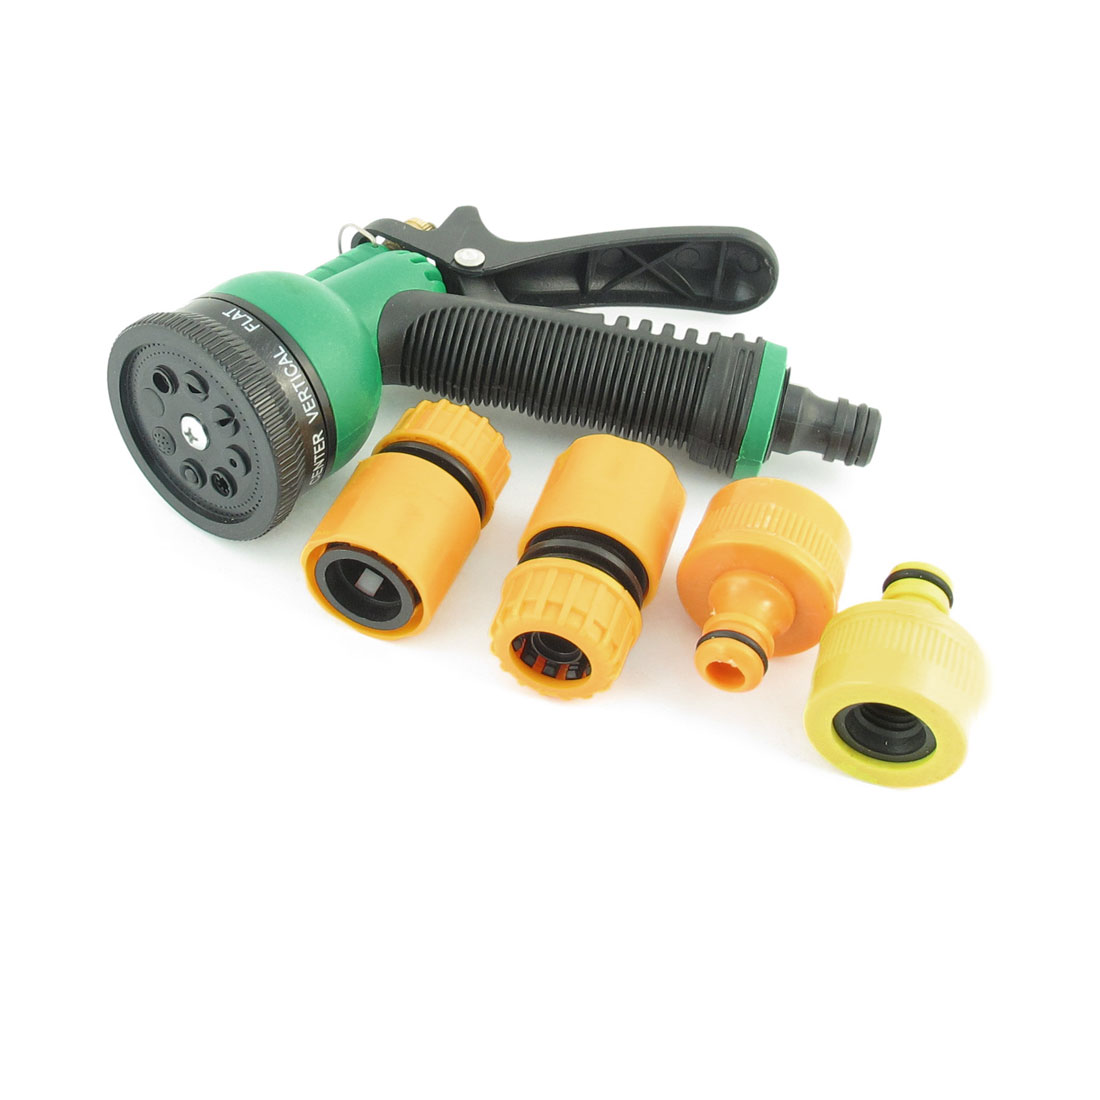 5 in 1 Garden Plants Lawn Watering Water Spraying Sprayer Hose Nozzle Set